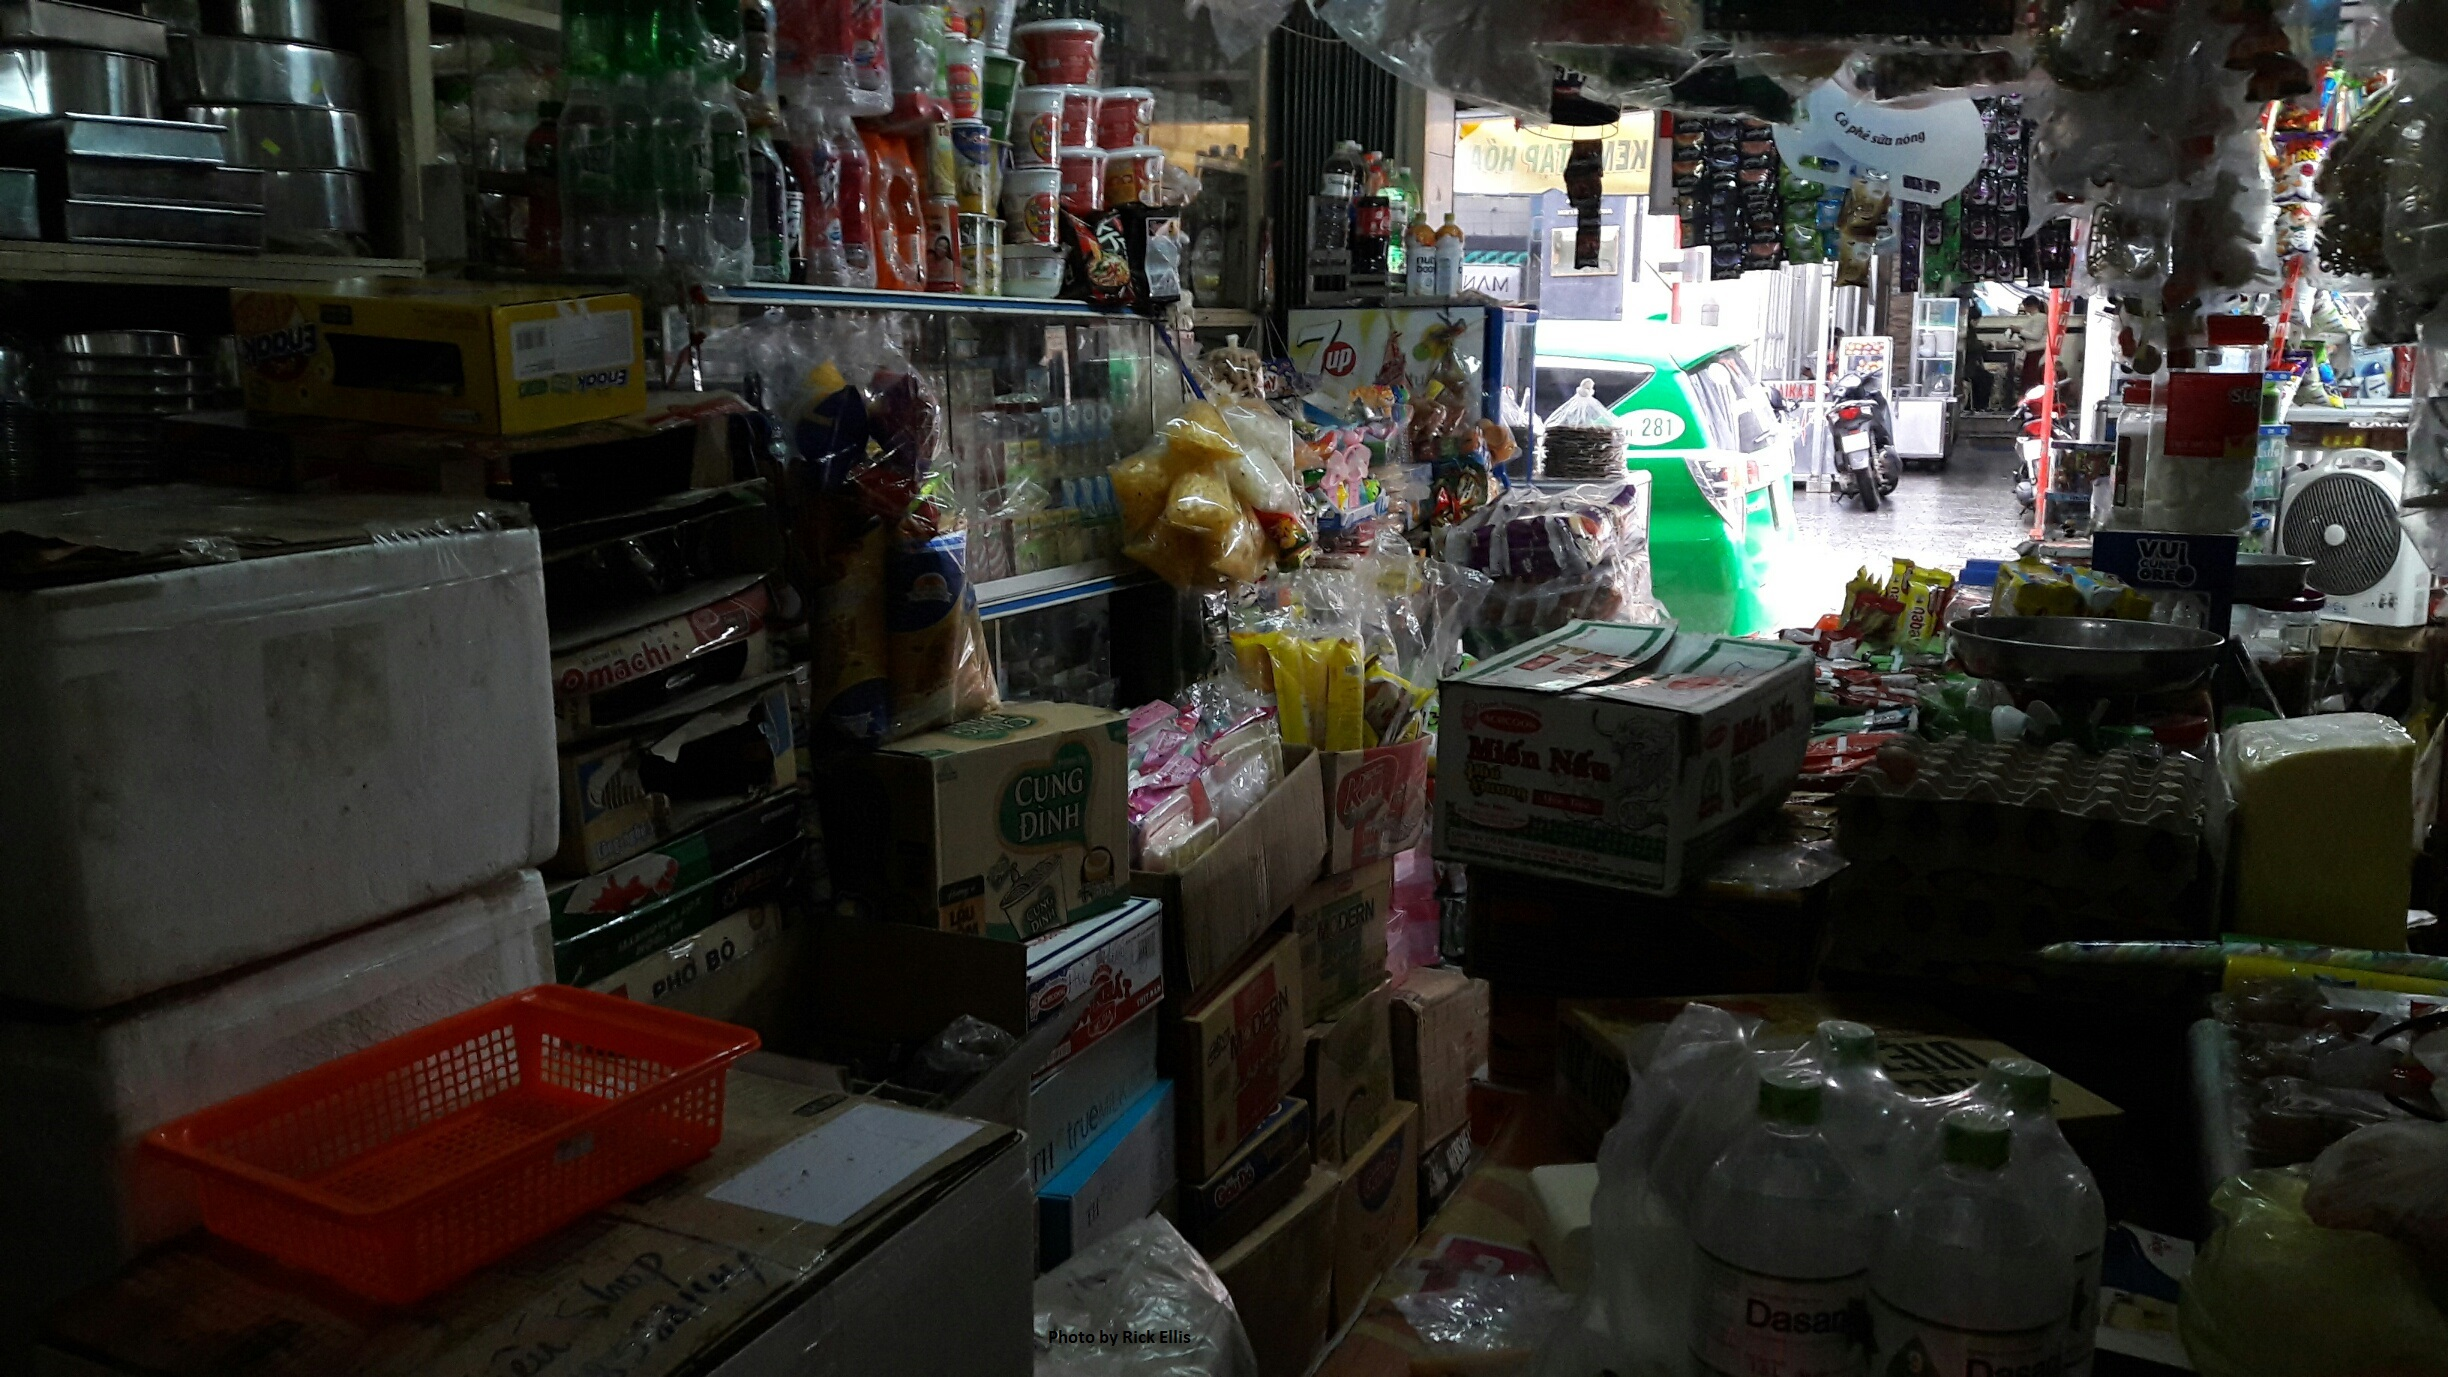 Vietnam journal: Here come the convenience stores!